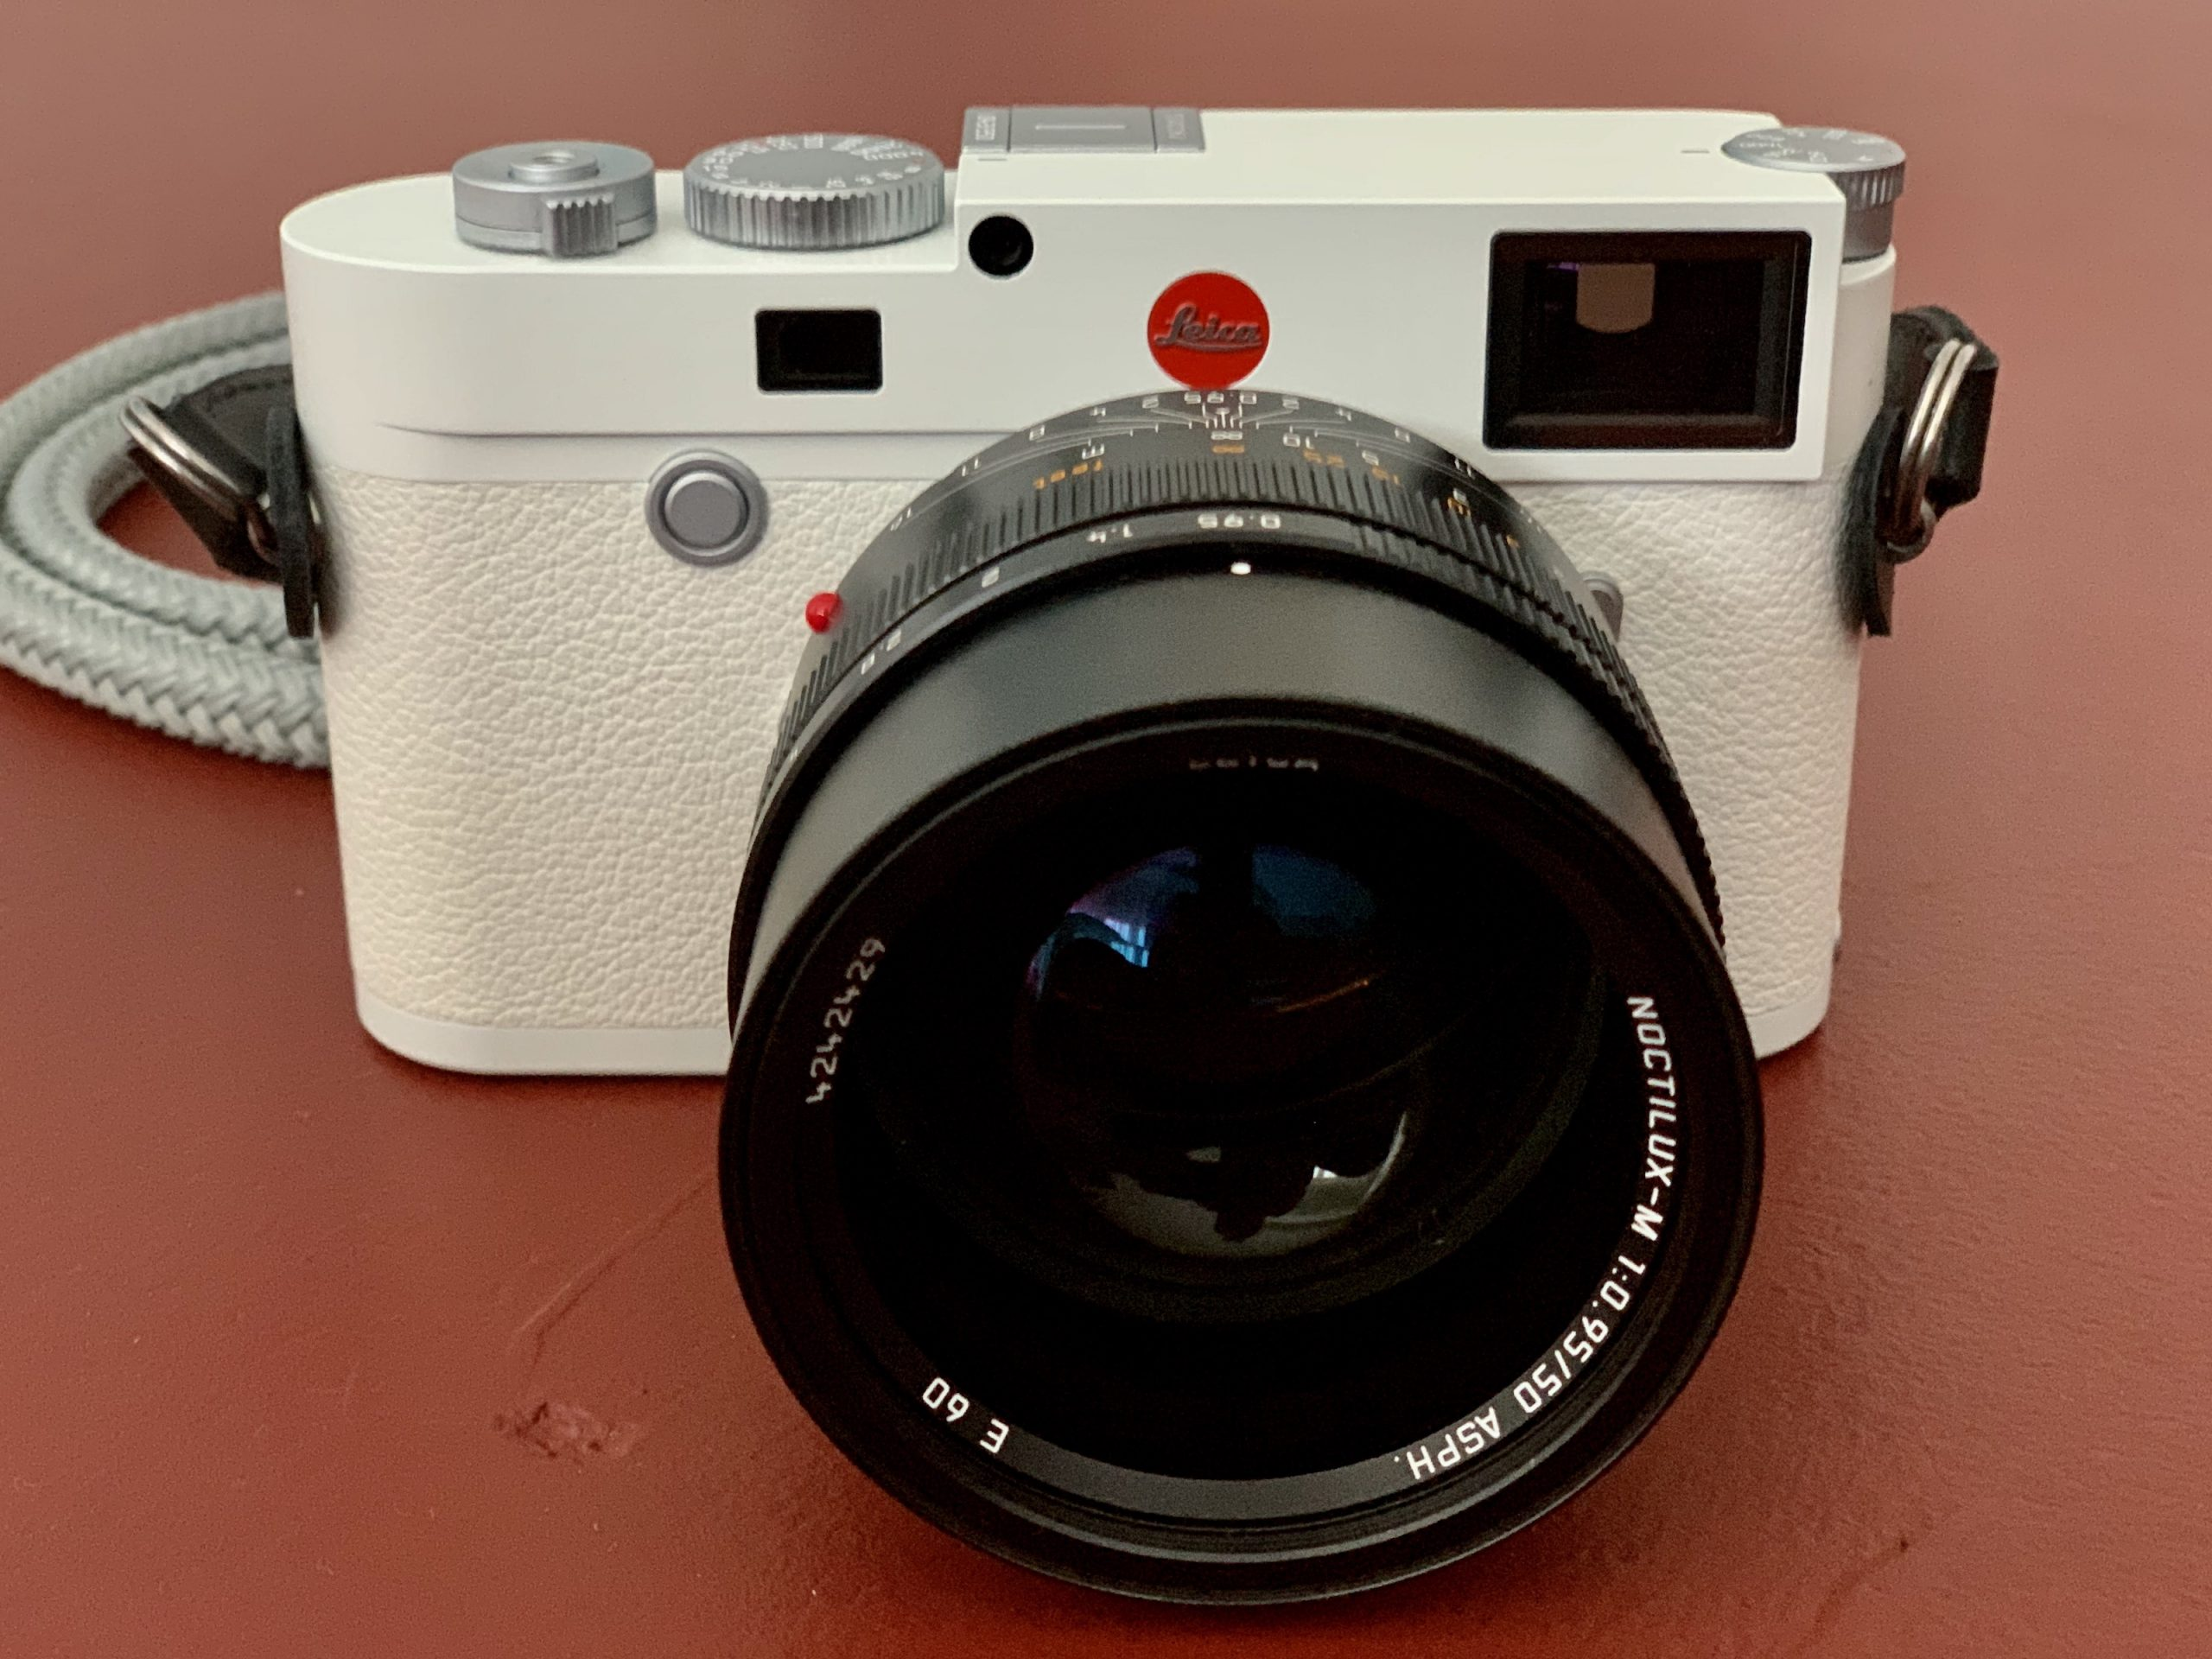 LEICA M10-P White Edition and LEICA NOCTILUX 50mm f/0.95 ASPH.